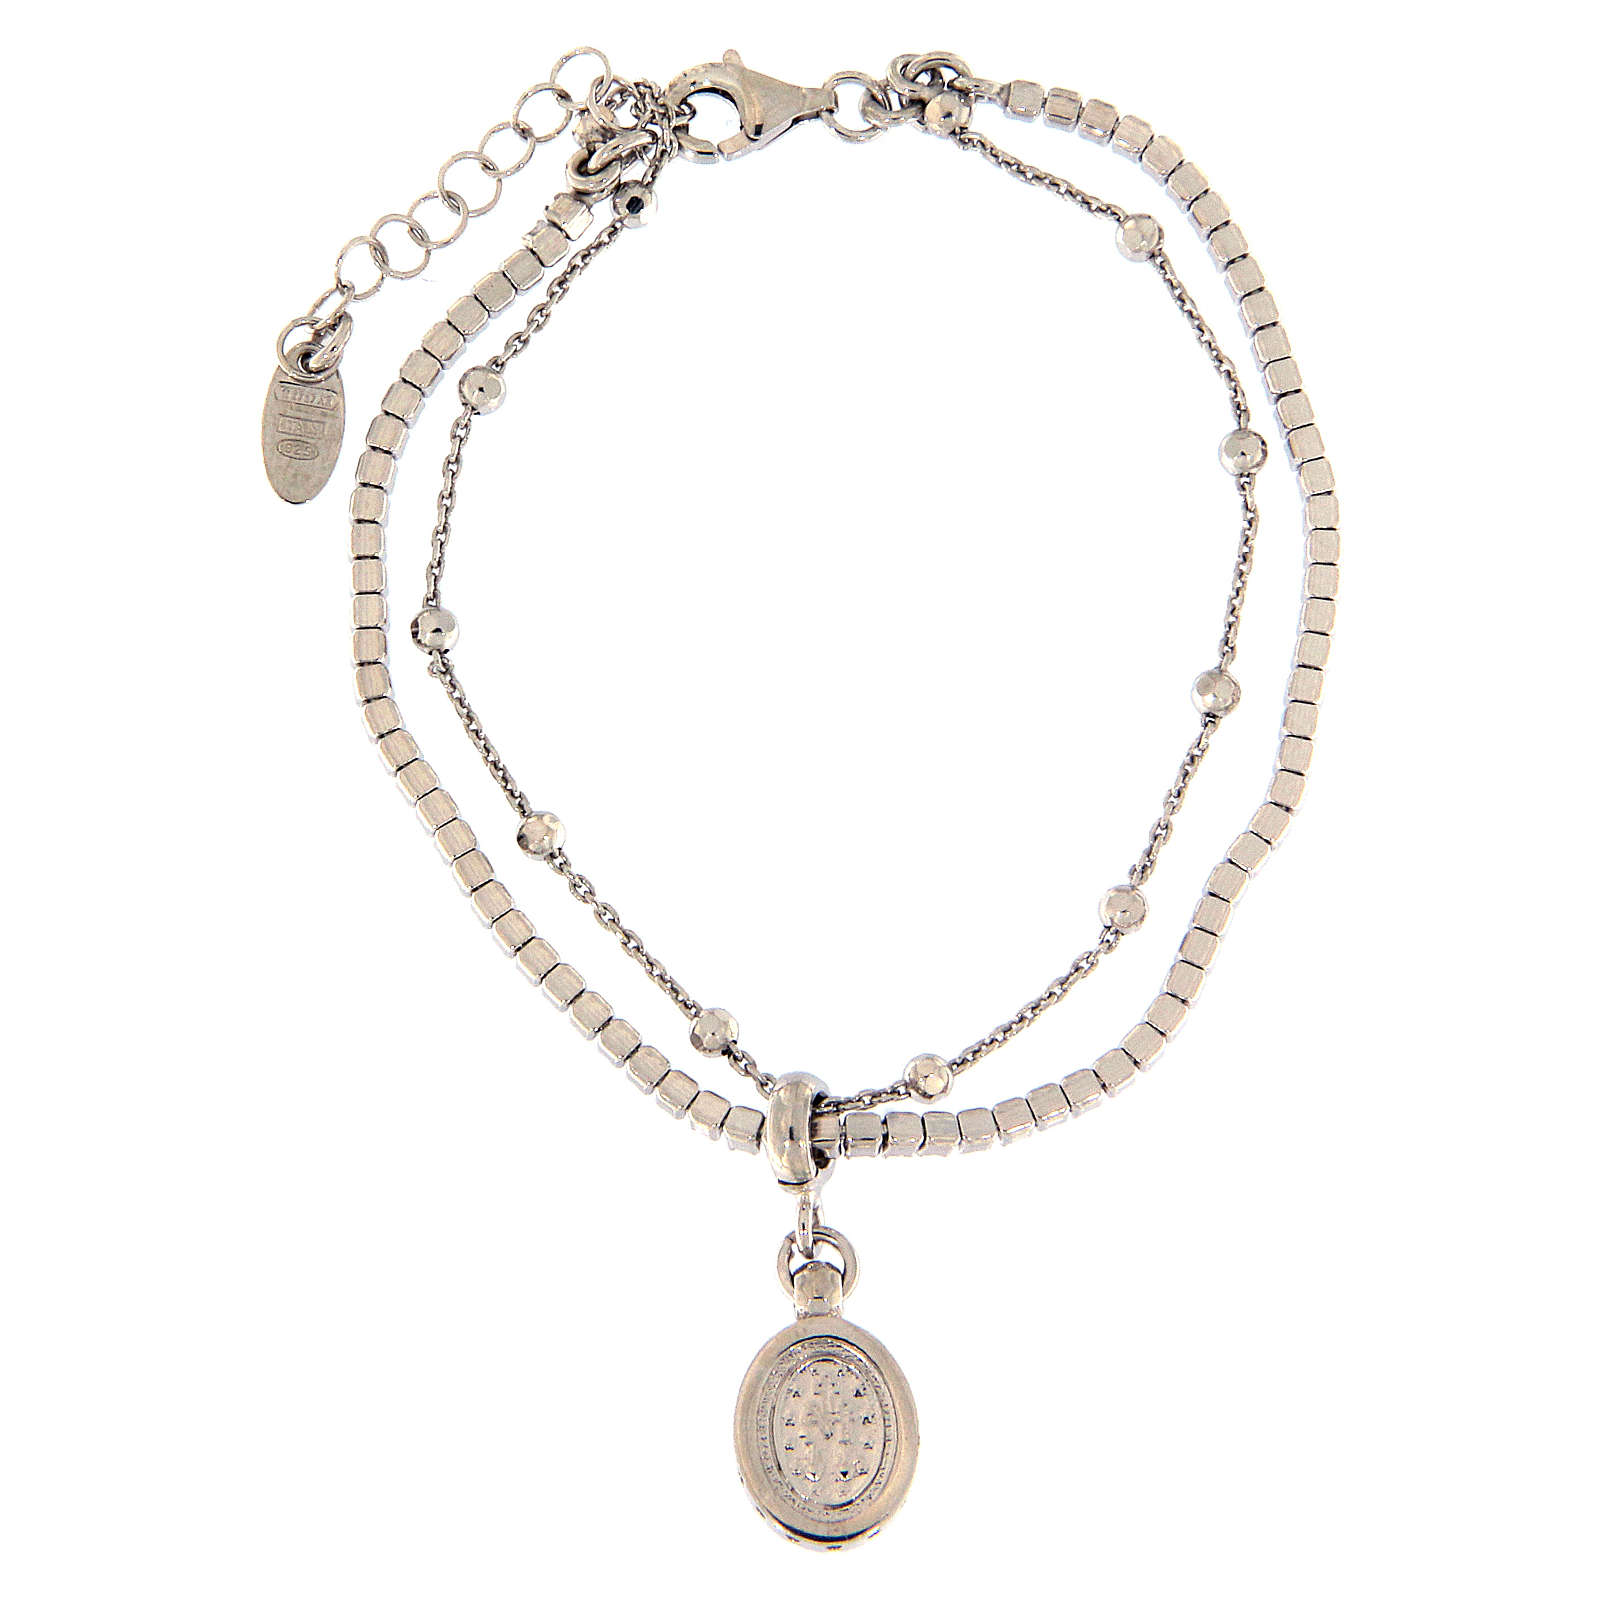 AMEN bracelet in rhodium-plated 925 silver with white rhinestones and medal with Our Lady of Miracles 4